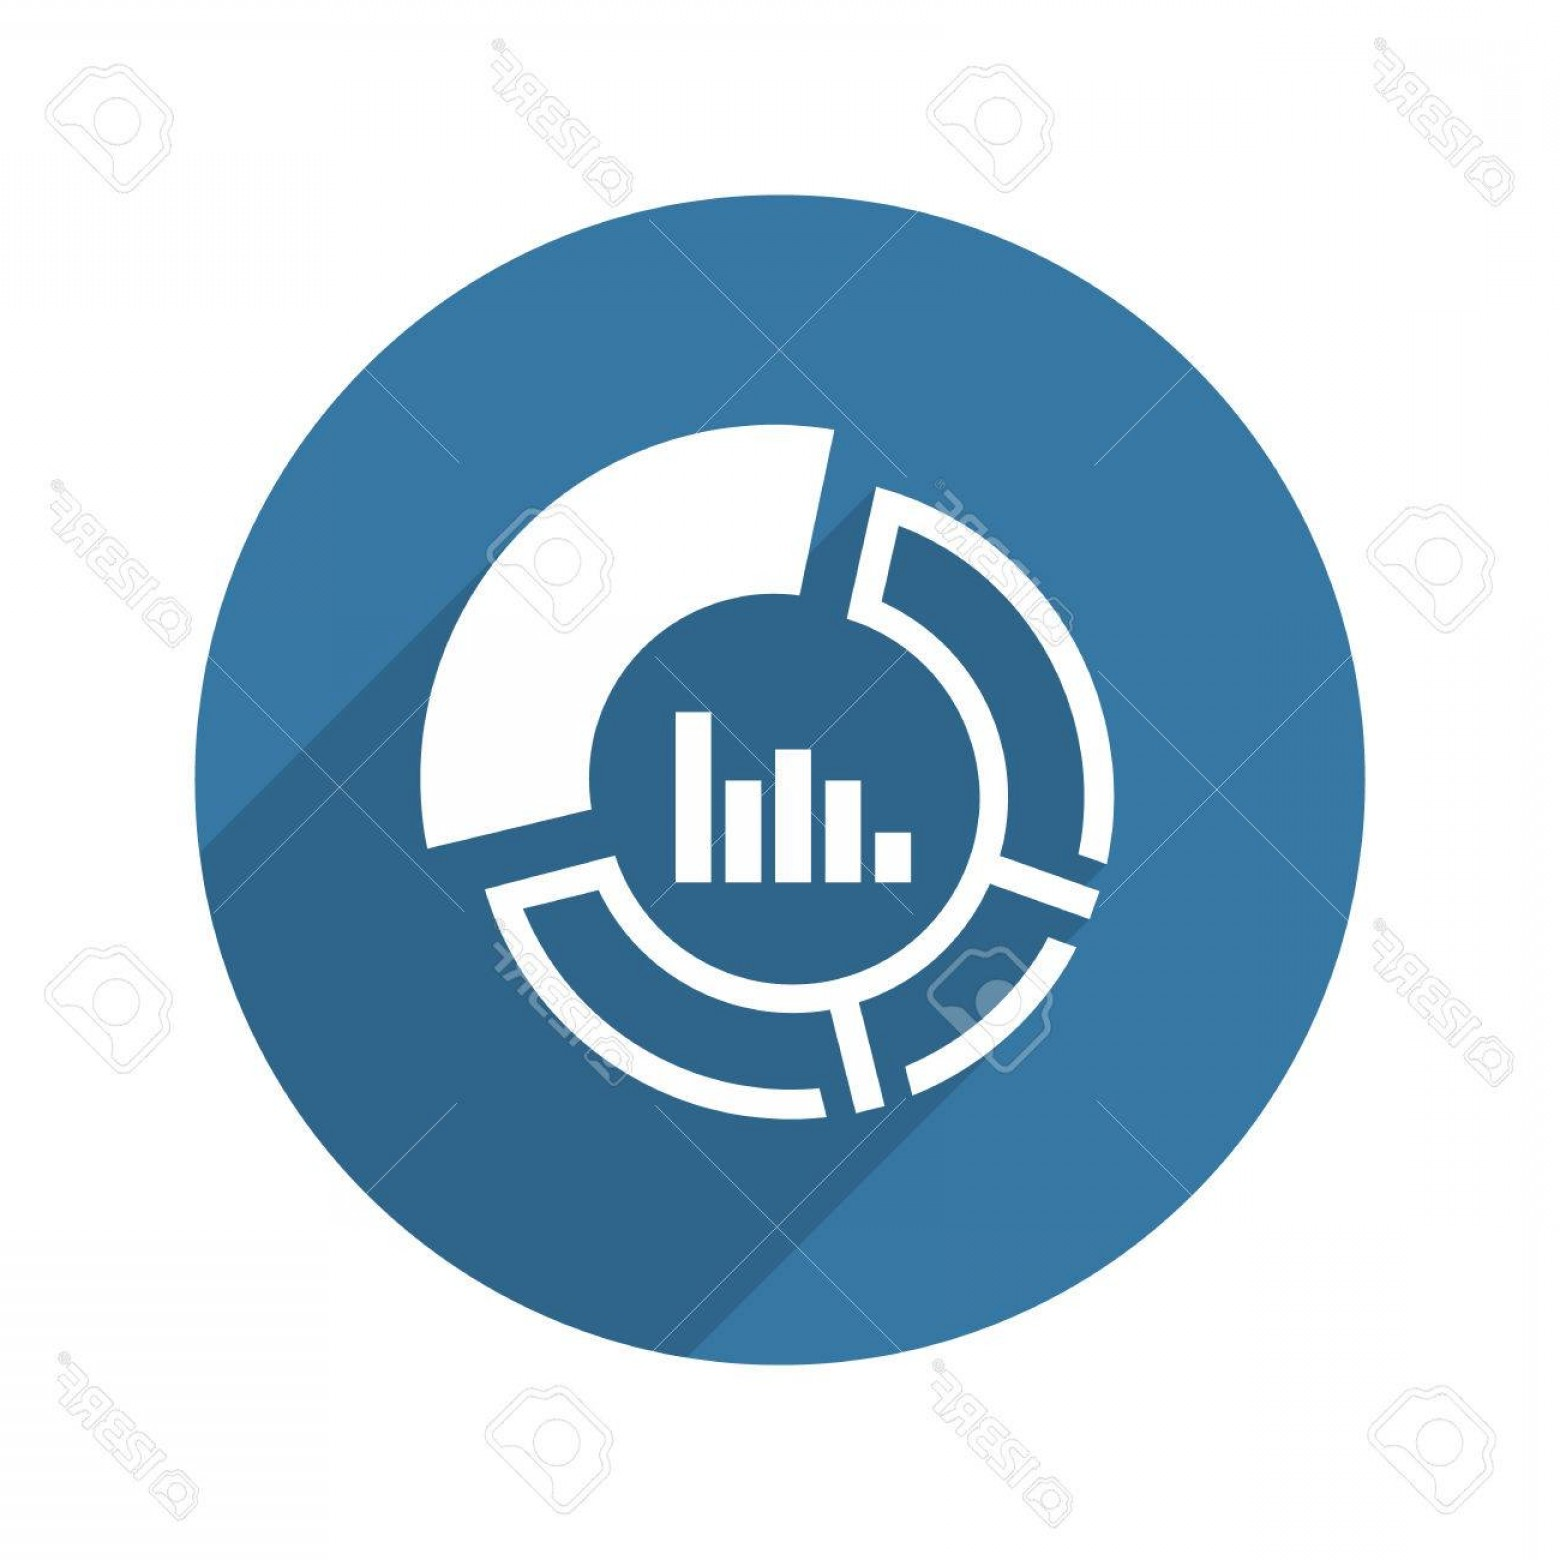 Share Logo Vector: Photostock Vector Market Share Icon Business Concept Flat Design Isolated Illustration